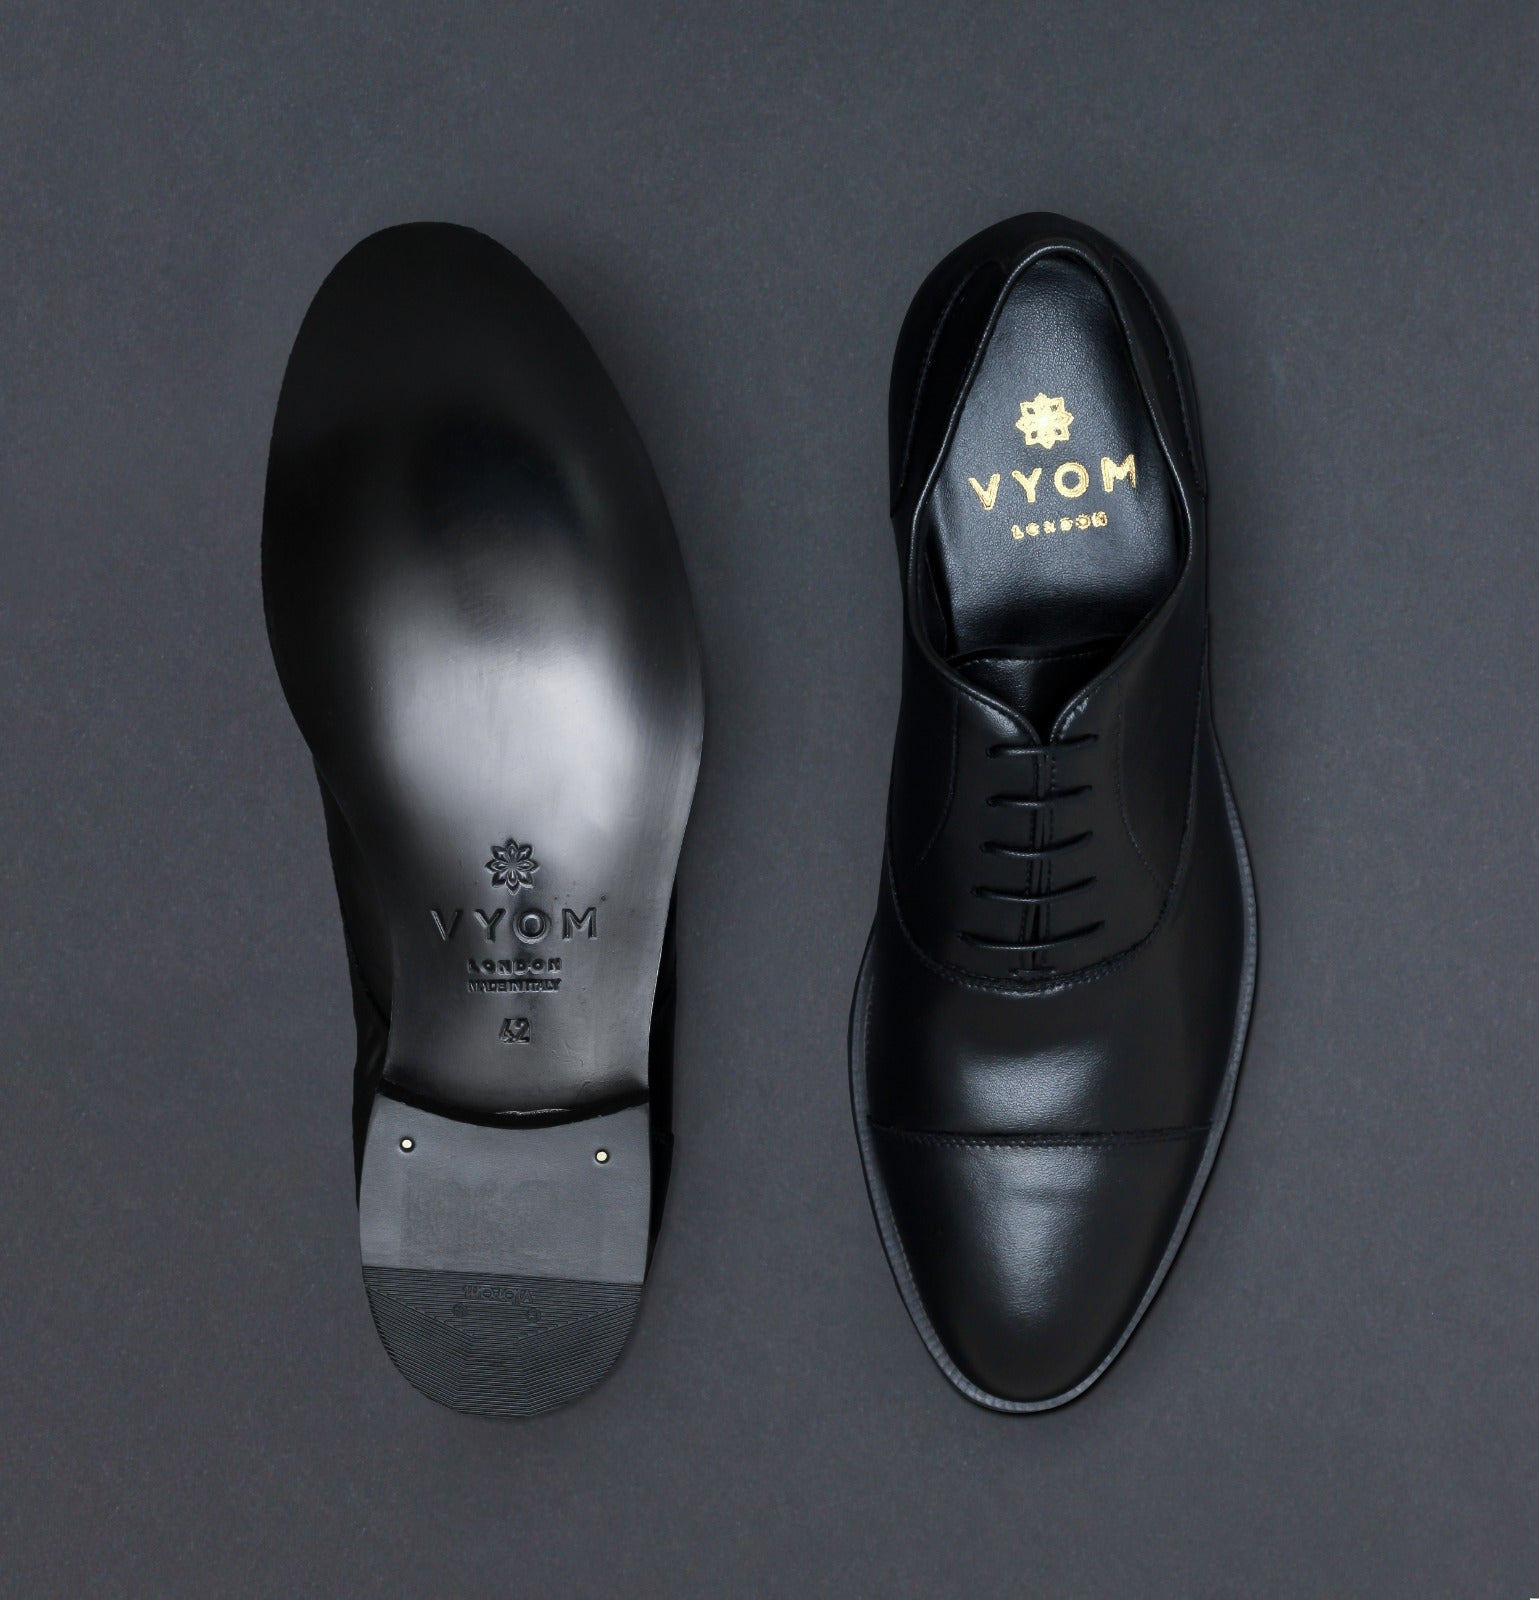 Vegan Shoes - Vyom London - Sustainable Shoes